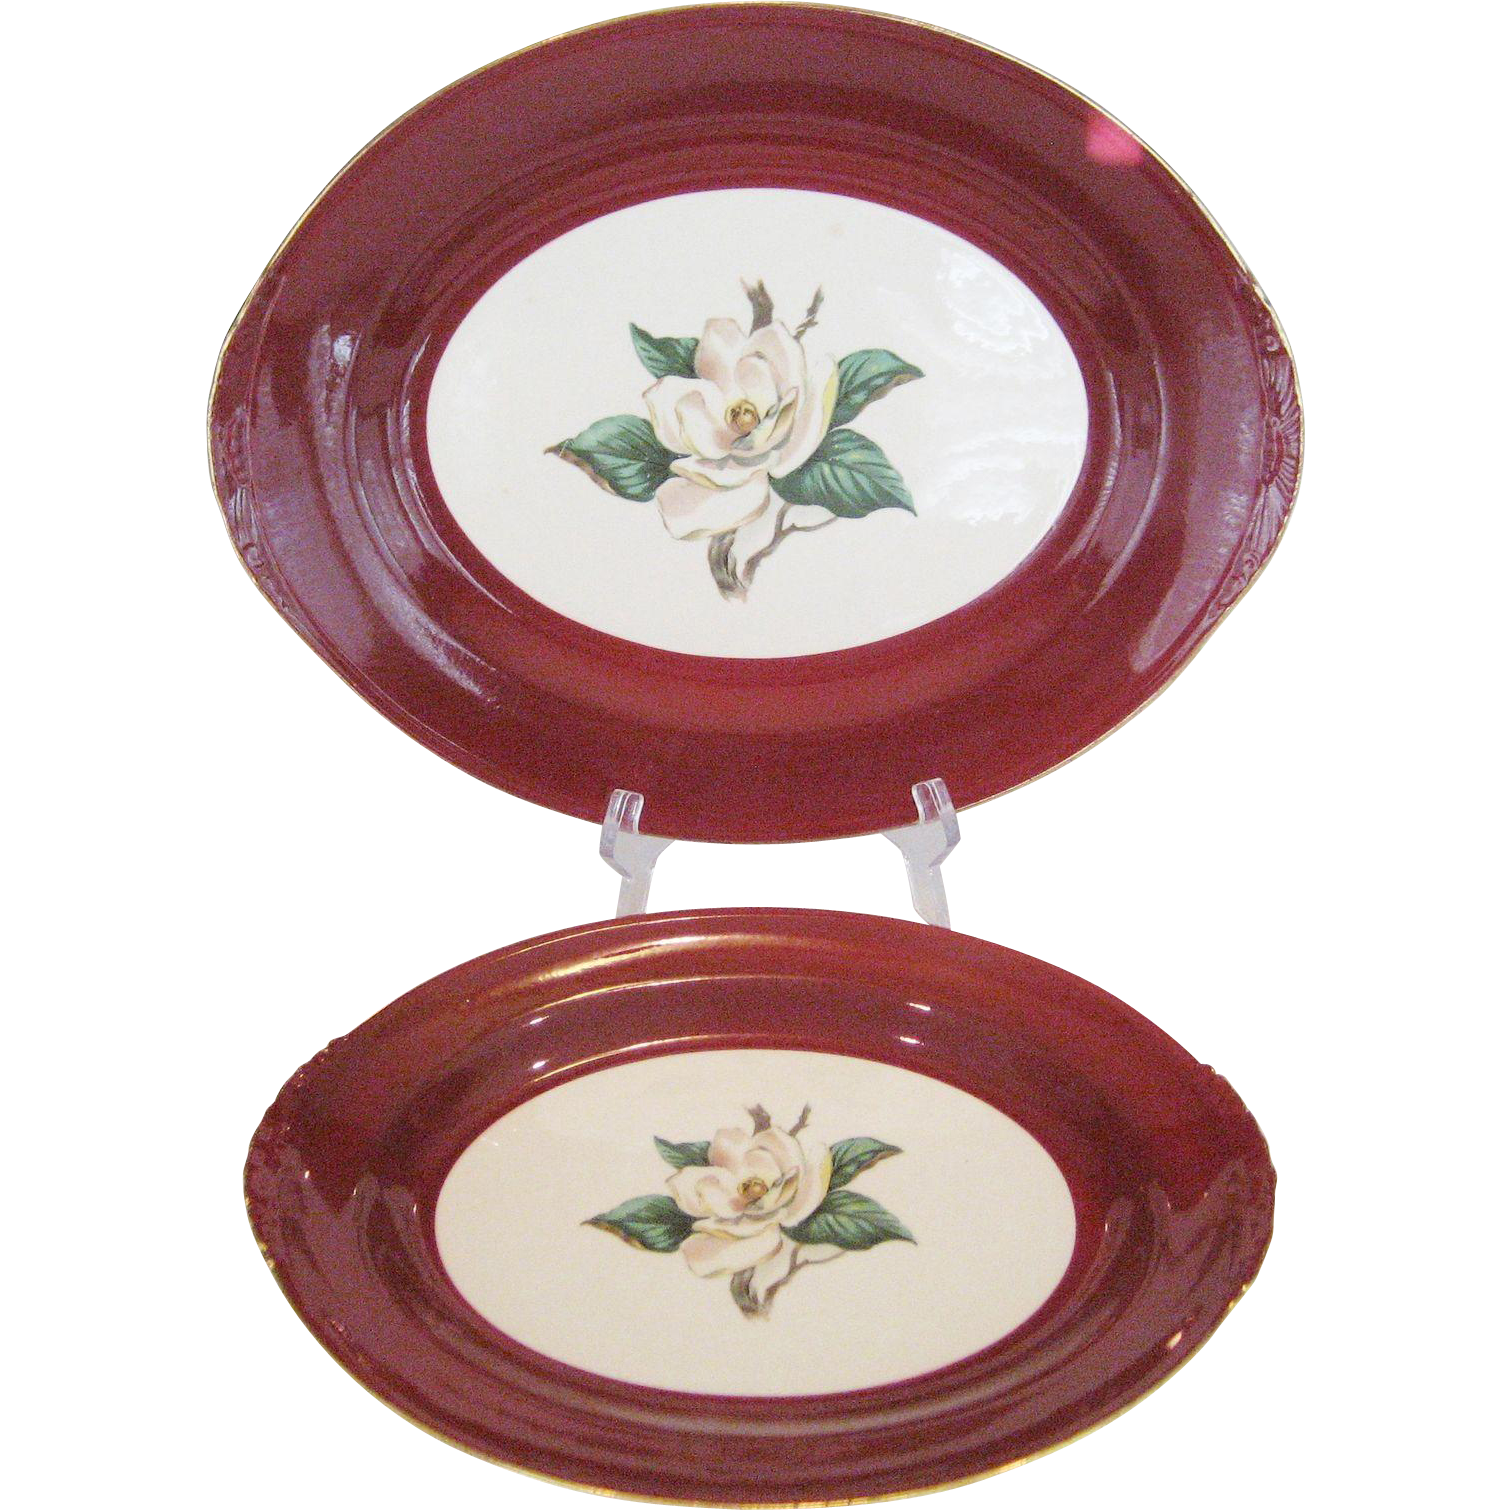 2 Homer Laughlin/Lifetime China Burgundy Platters